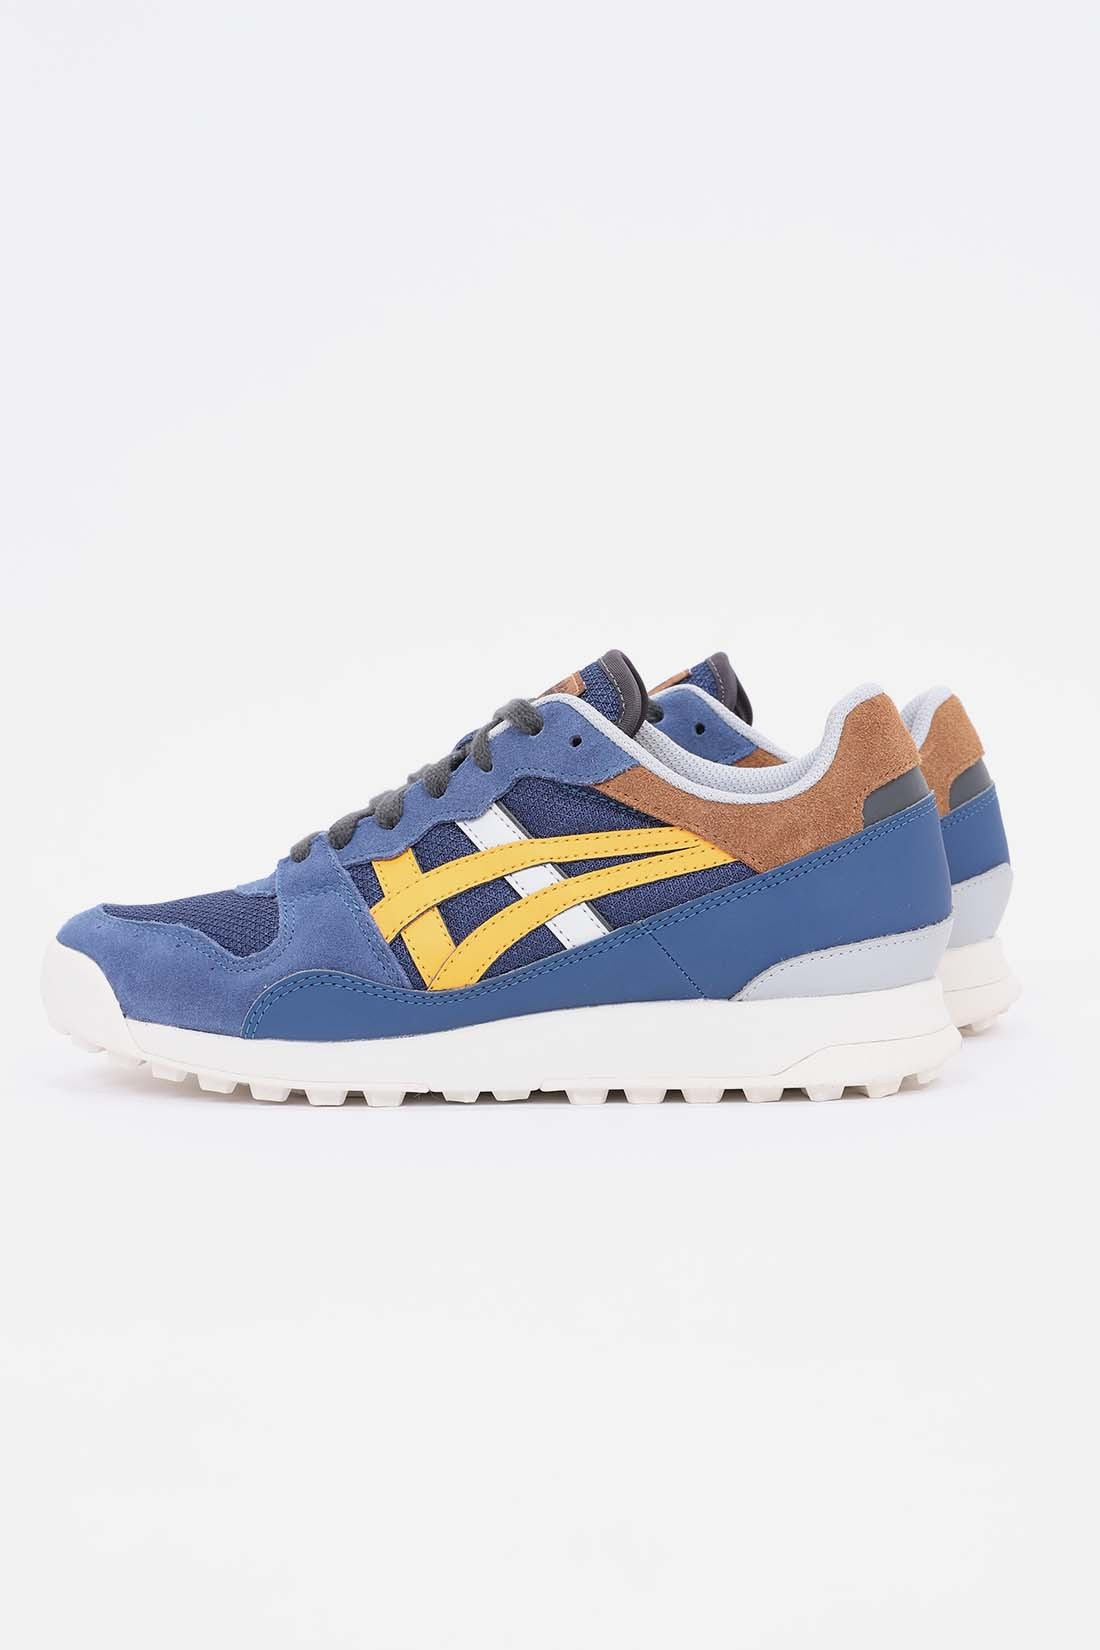 ASICS / Tiger horizonia midnight Blue citrus